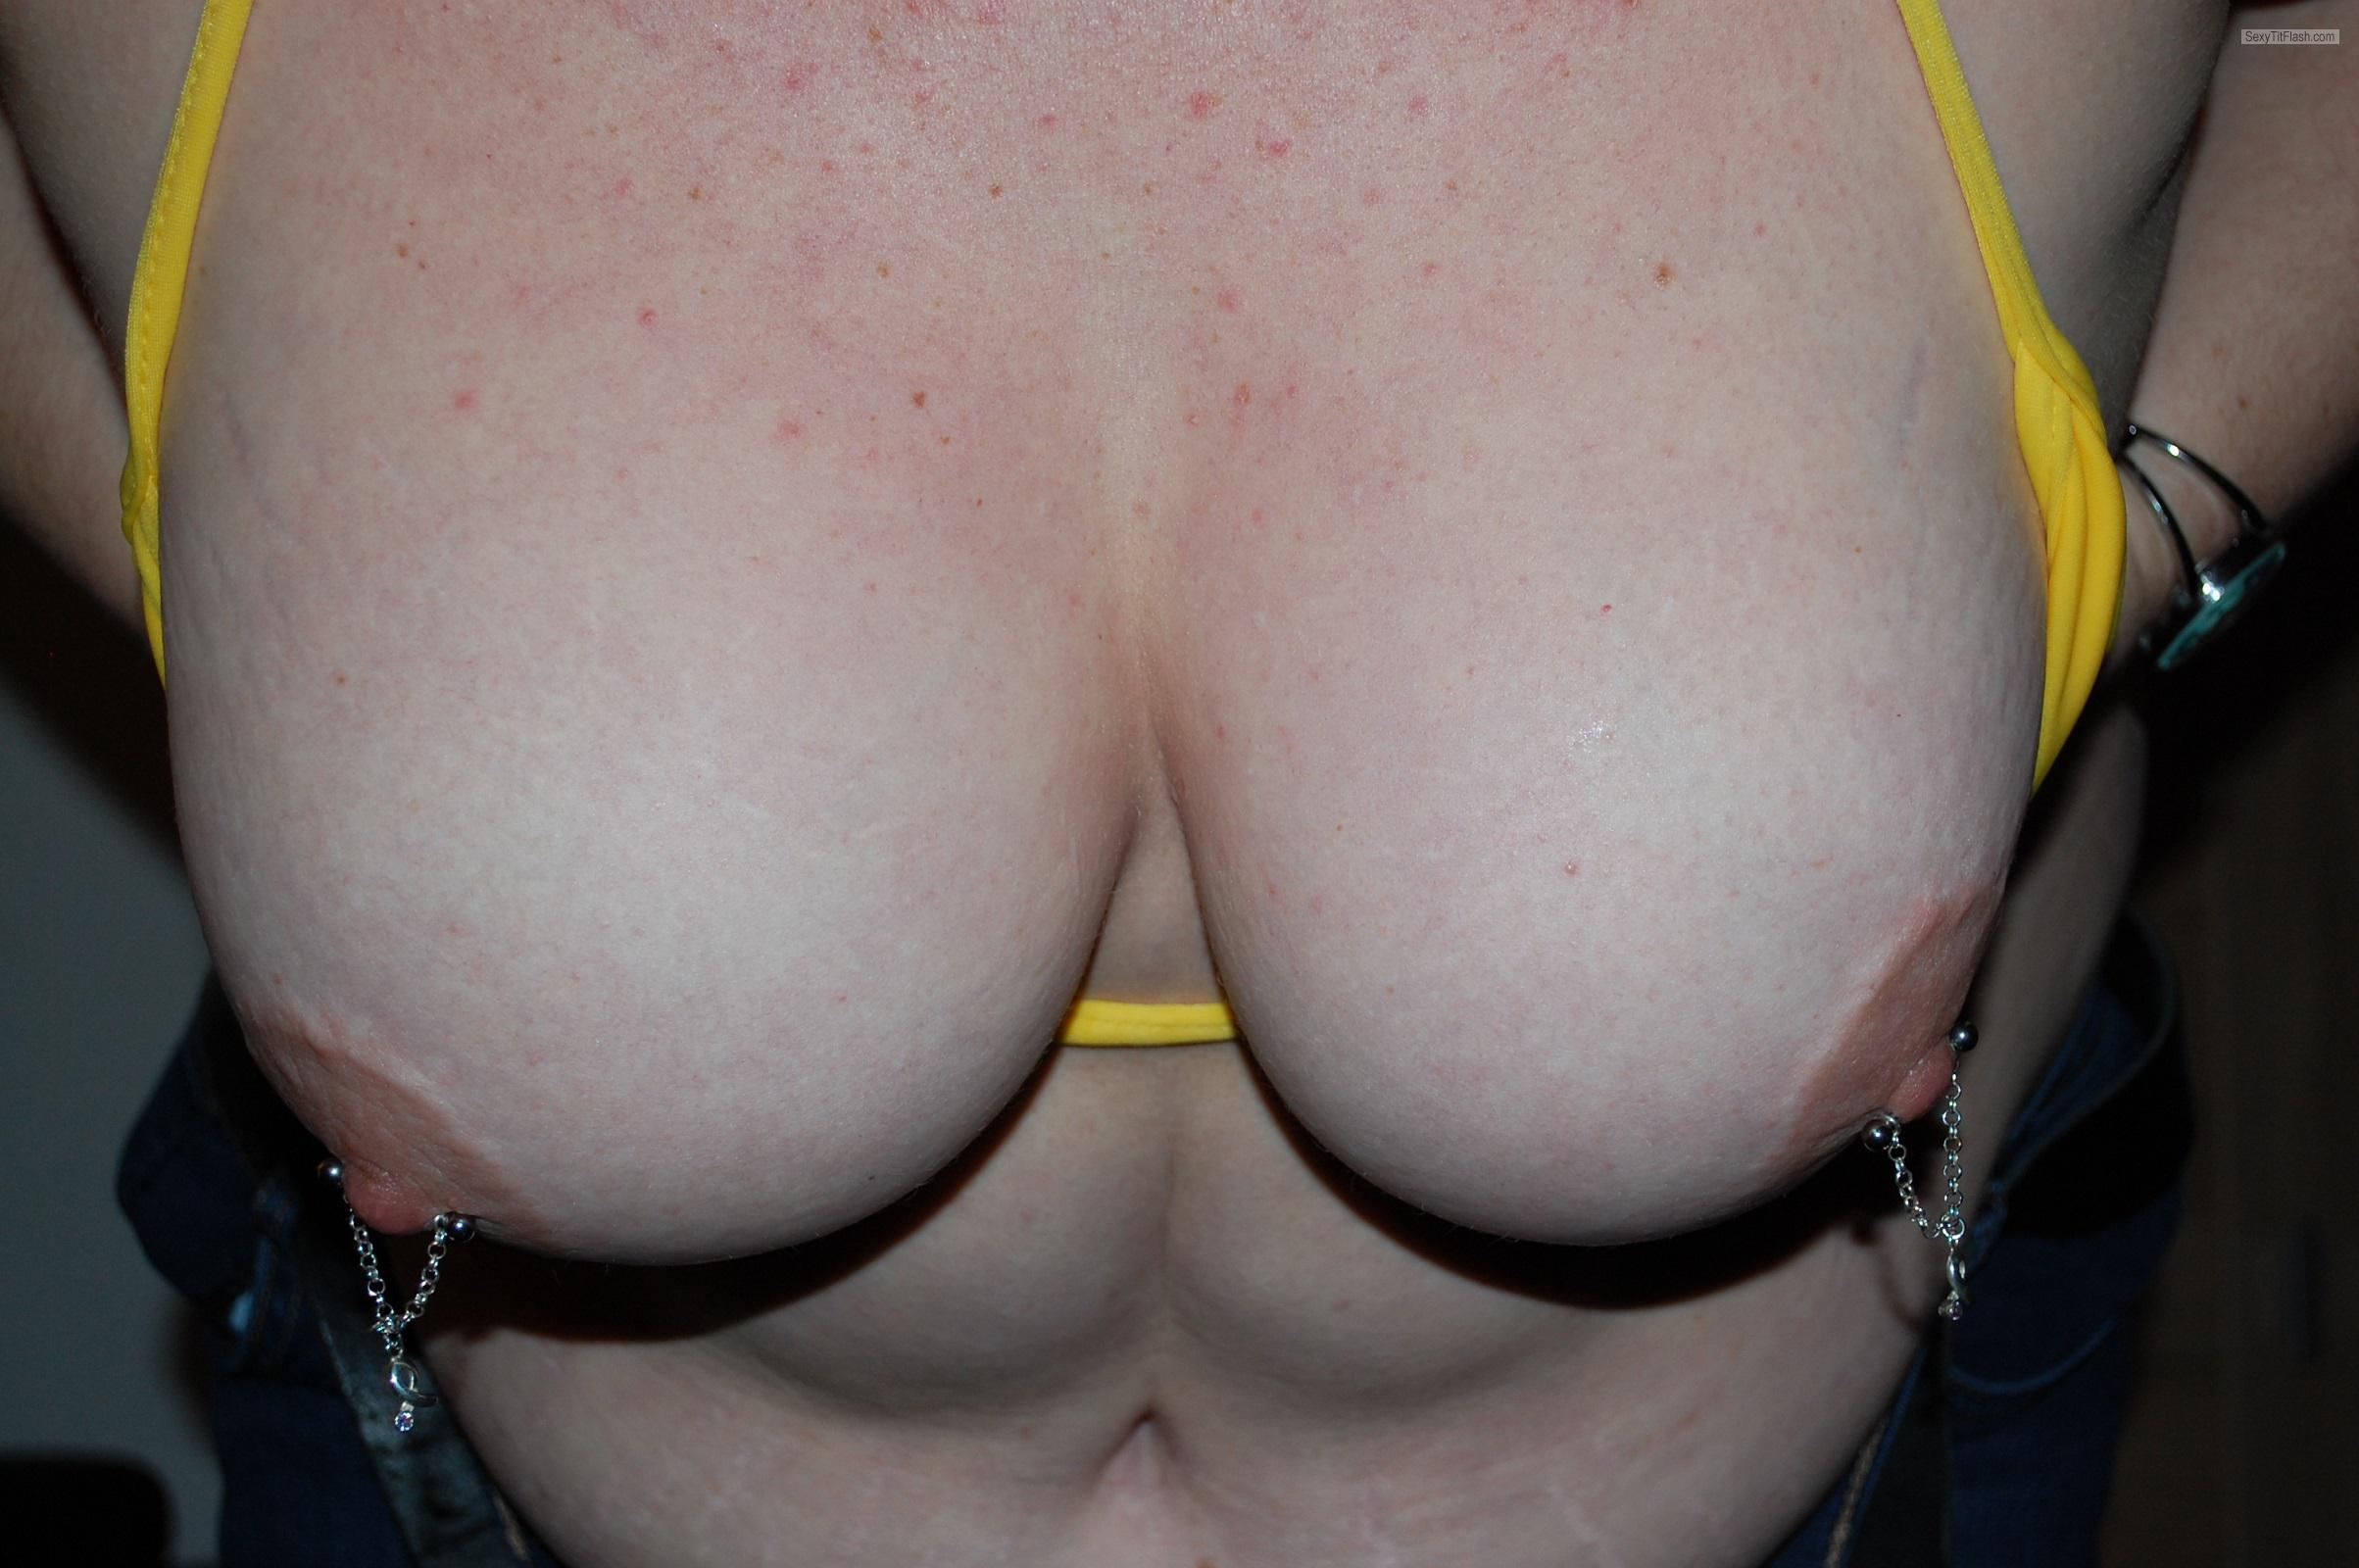 Tit Flash: Girlfriend's Big Tits - J. from NetherlandsPierced Nipples